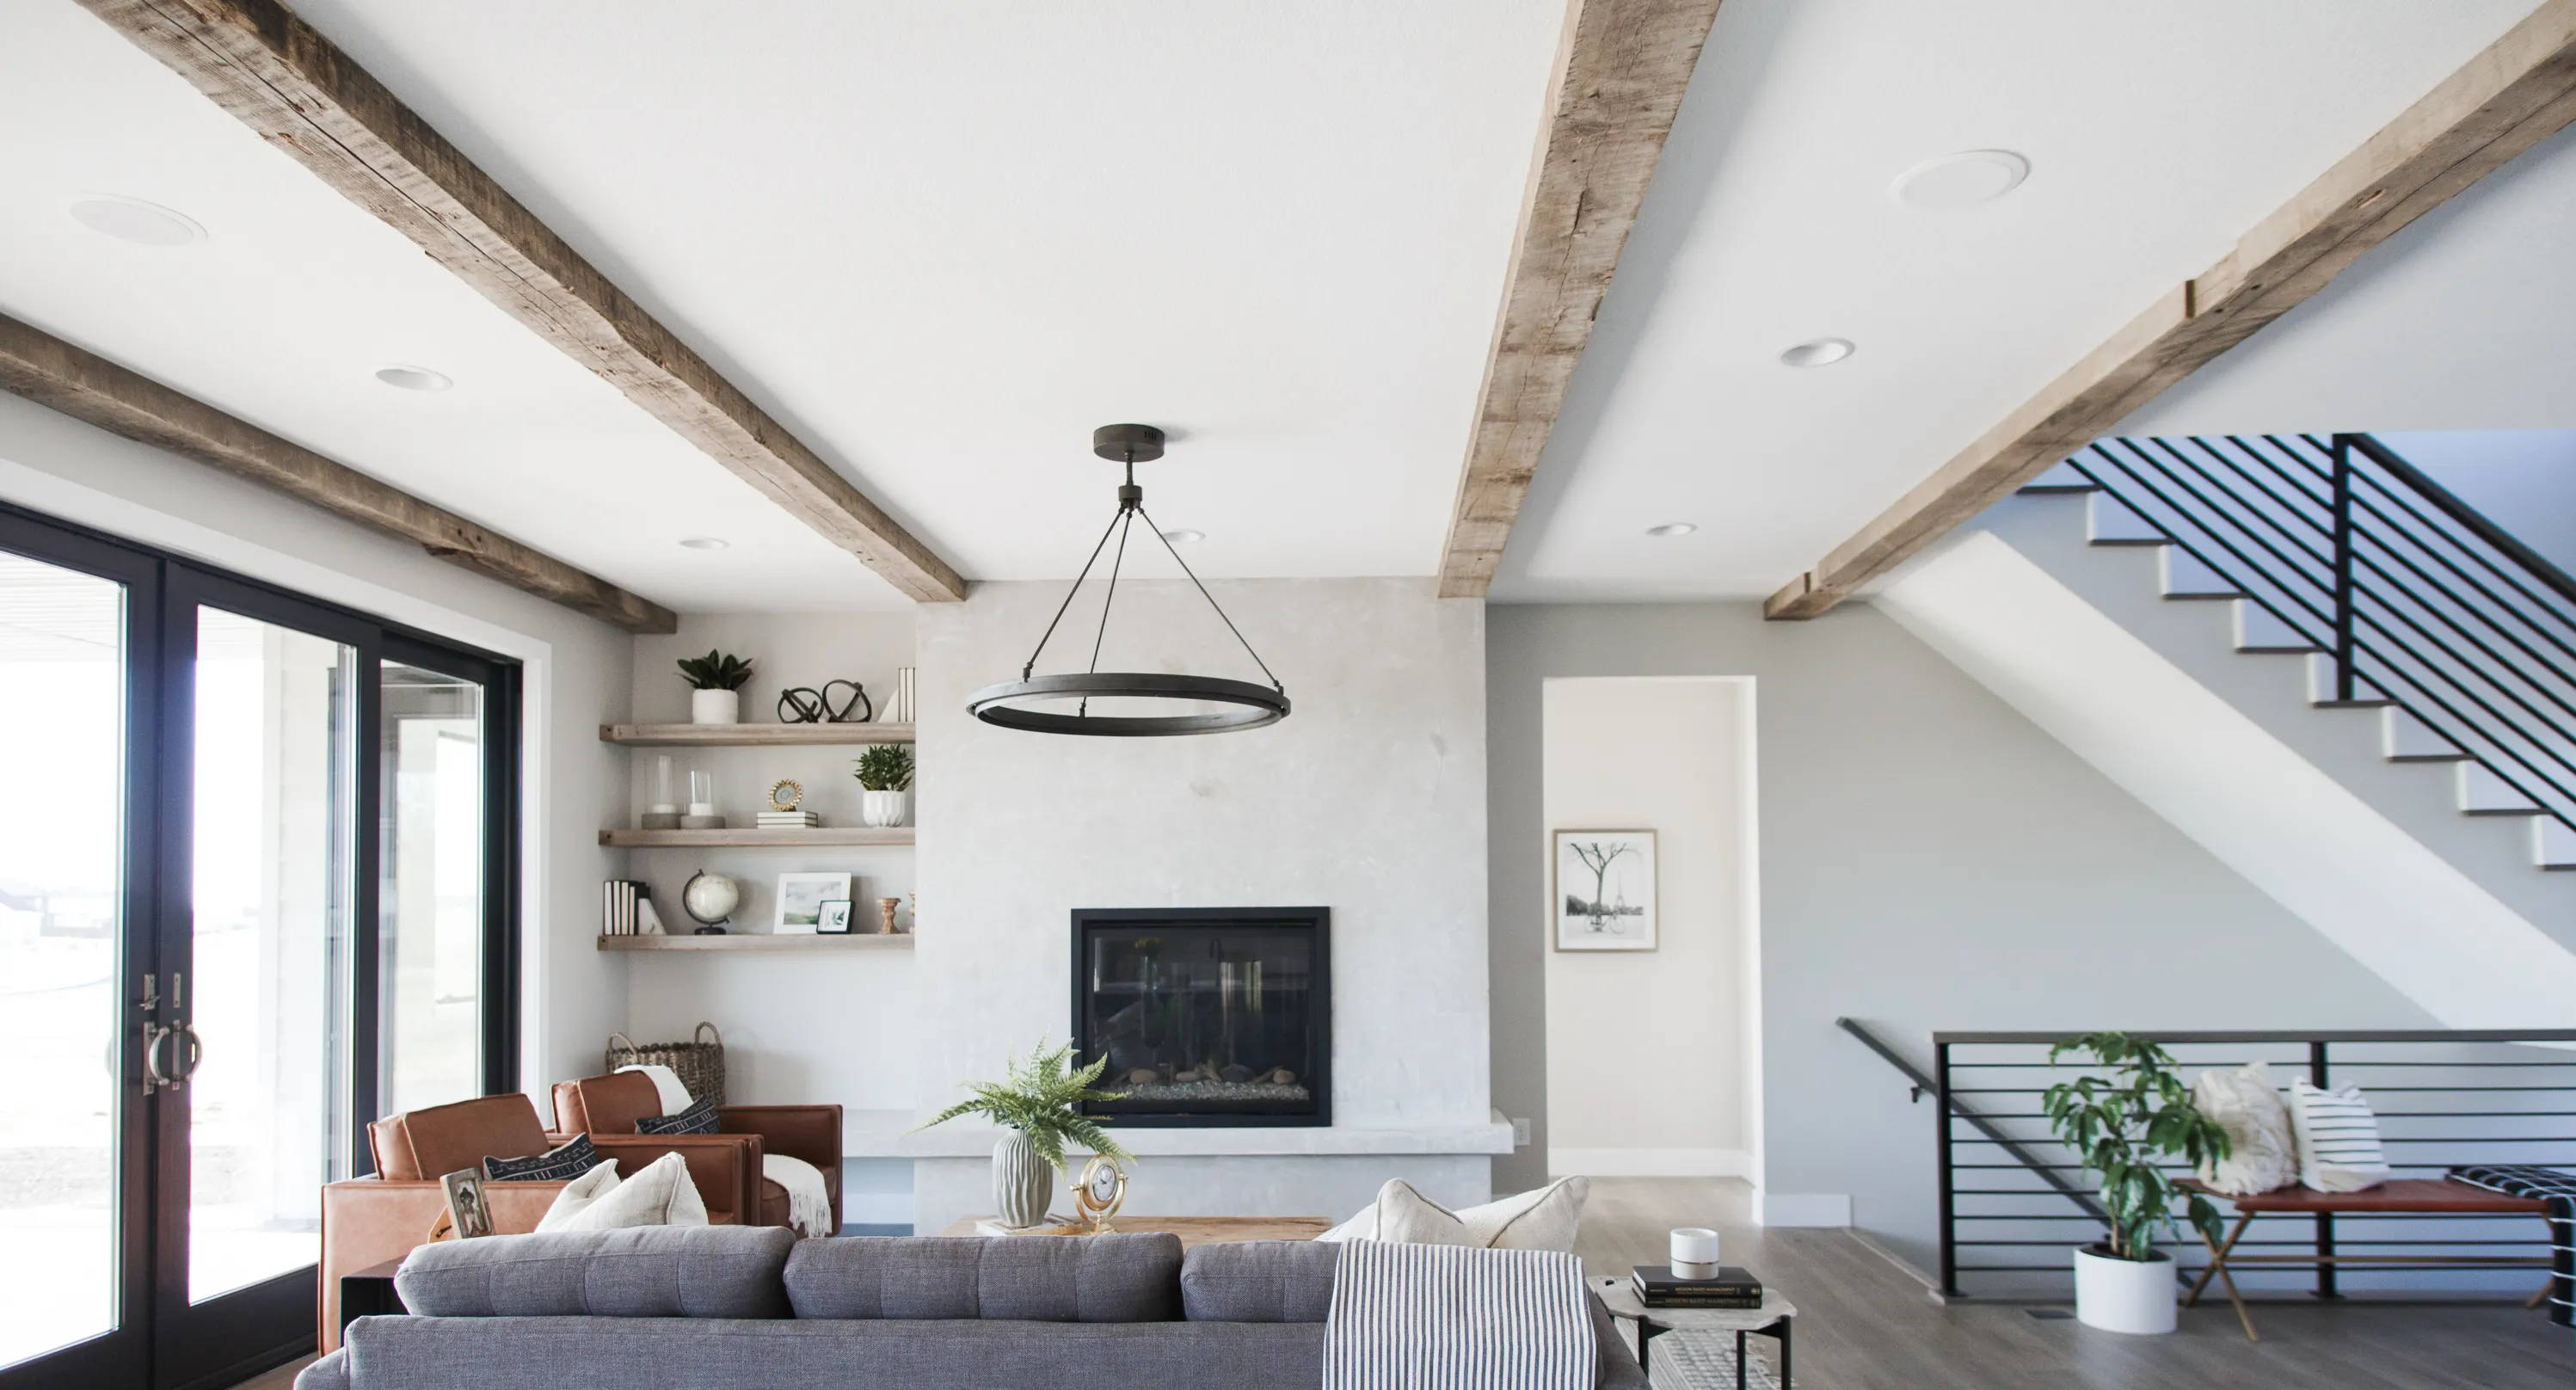 Rustic, Reclaimed Ceiling Beams - Unfinished